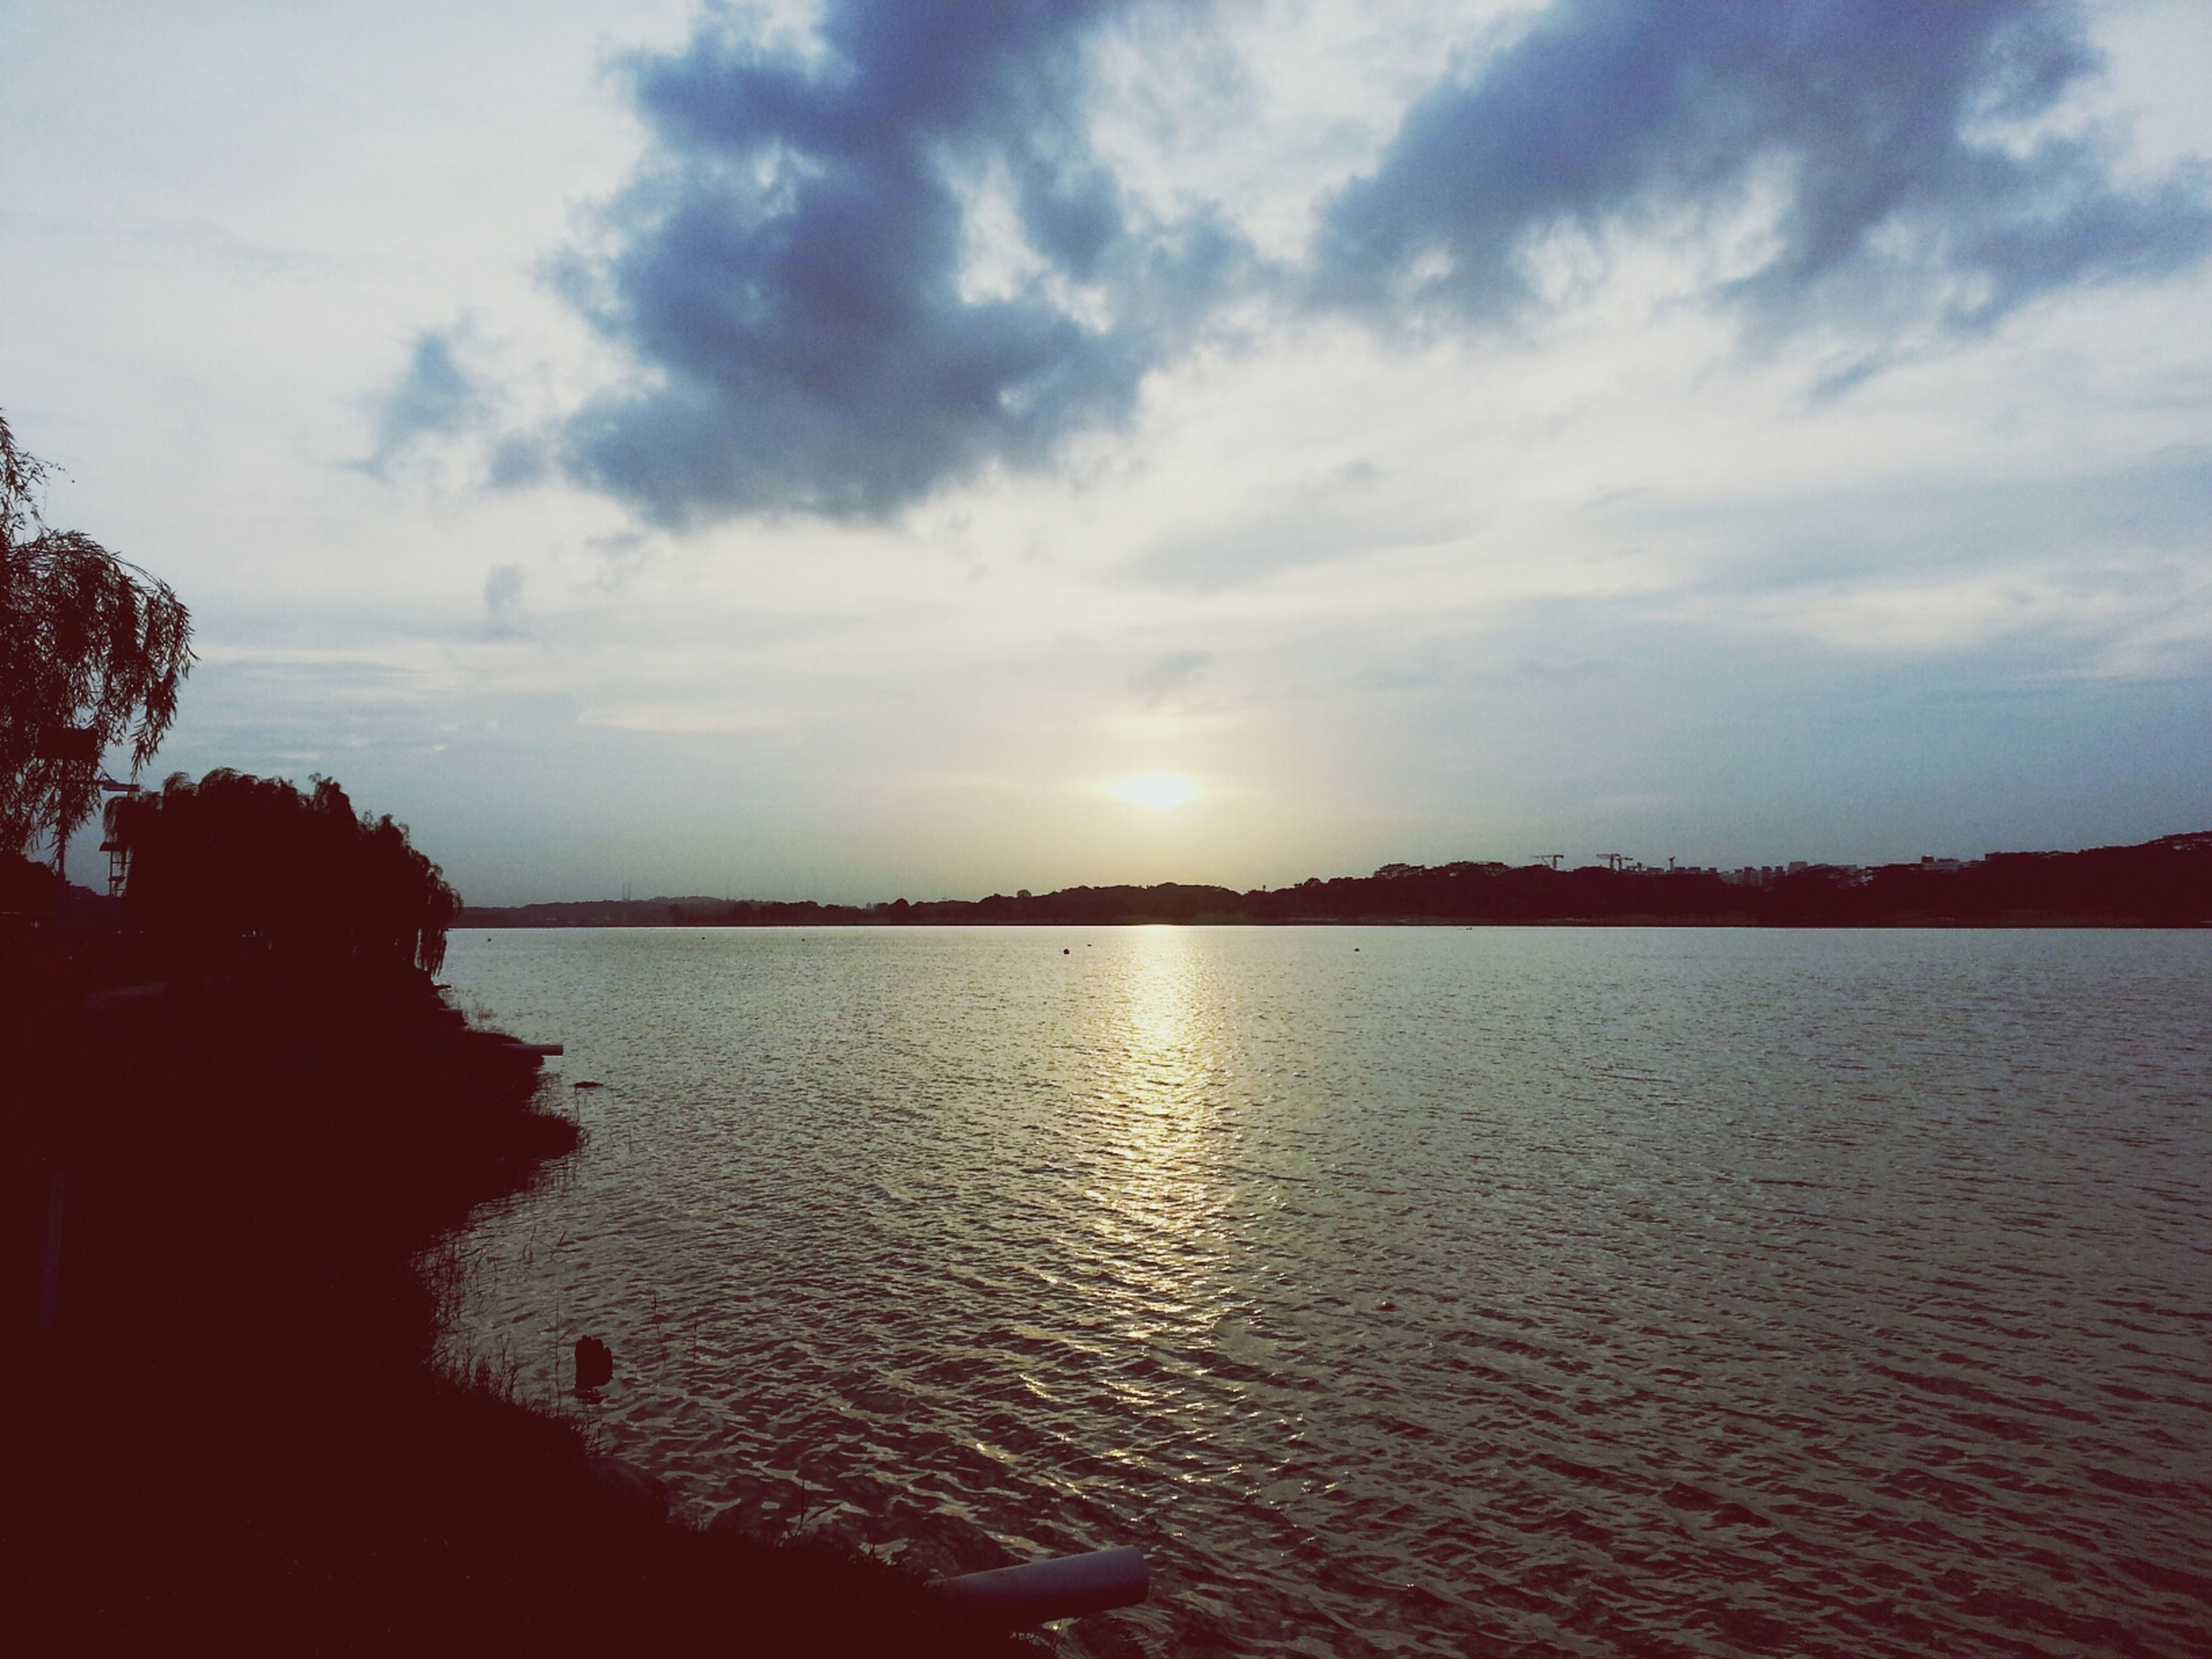 water, sky, tranquil scene, scenics, tranquility, sunset, beauty in nature, sun, cloud - sky, nature, silhouette, reflection, sunlight, lake, waterfront, tree, cloud, idyllic, river, rippled